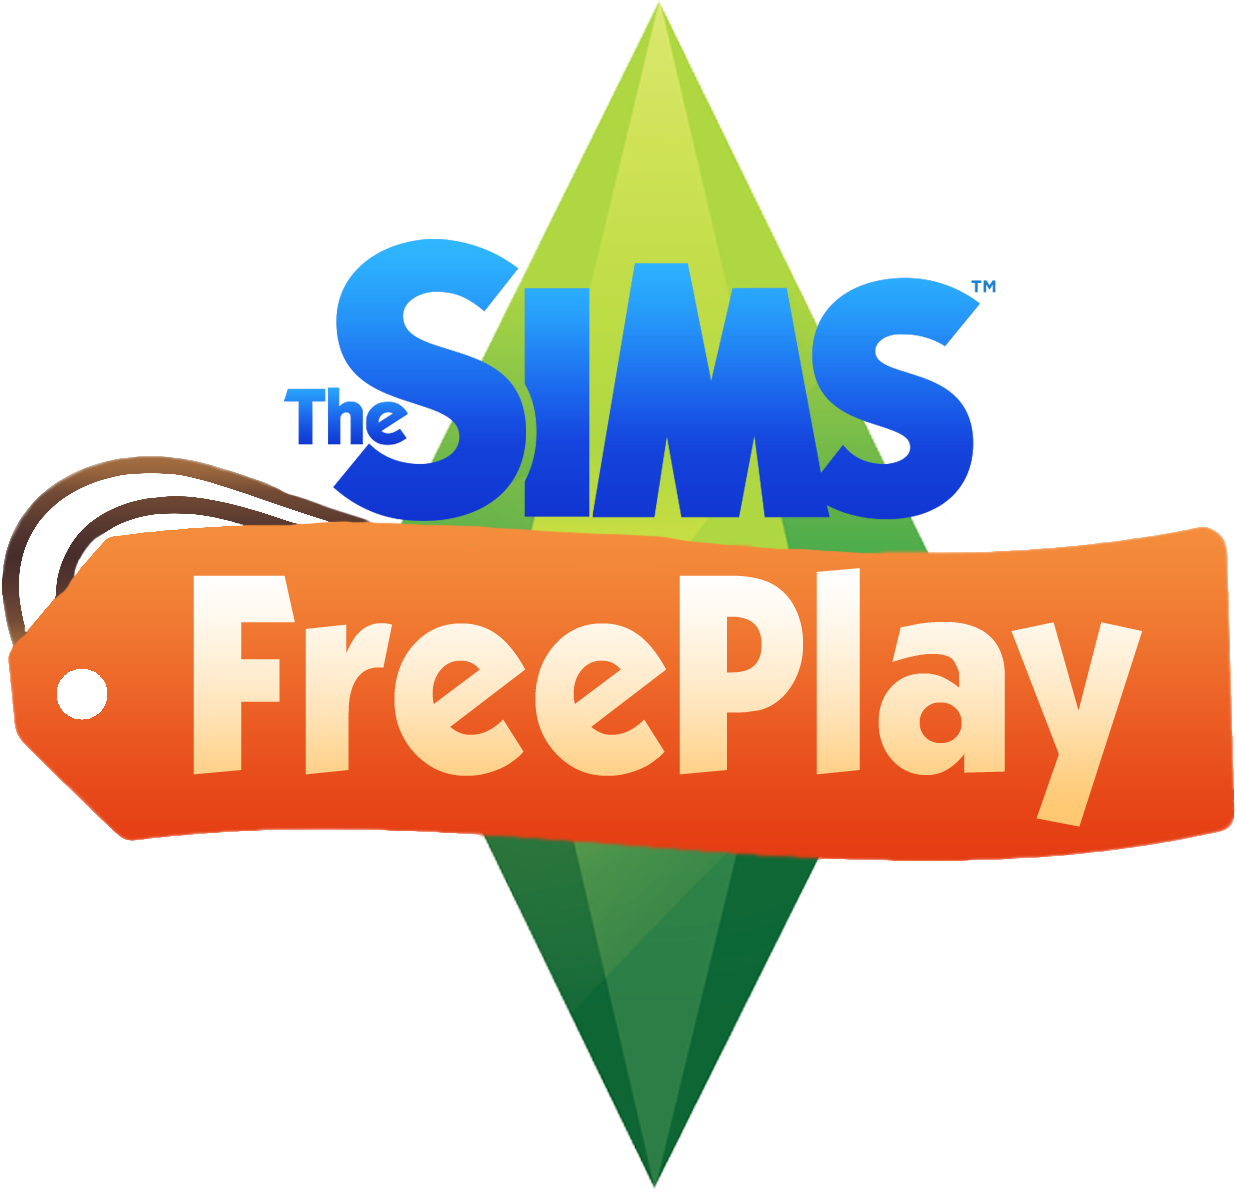 The-Sims-4-Dine-Out-key-generator-for-free